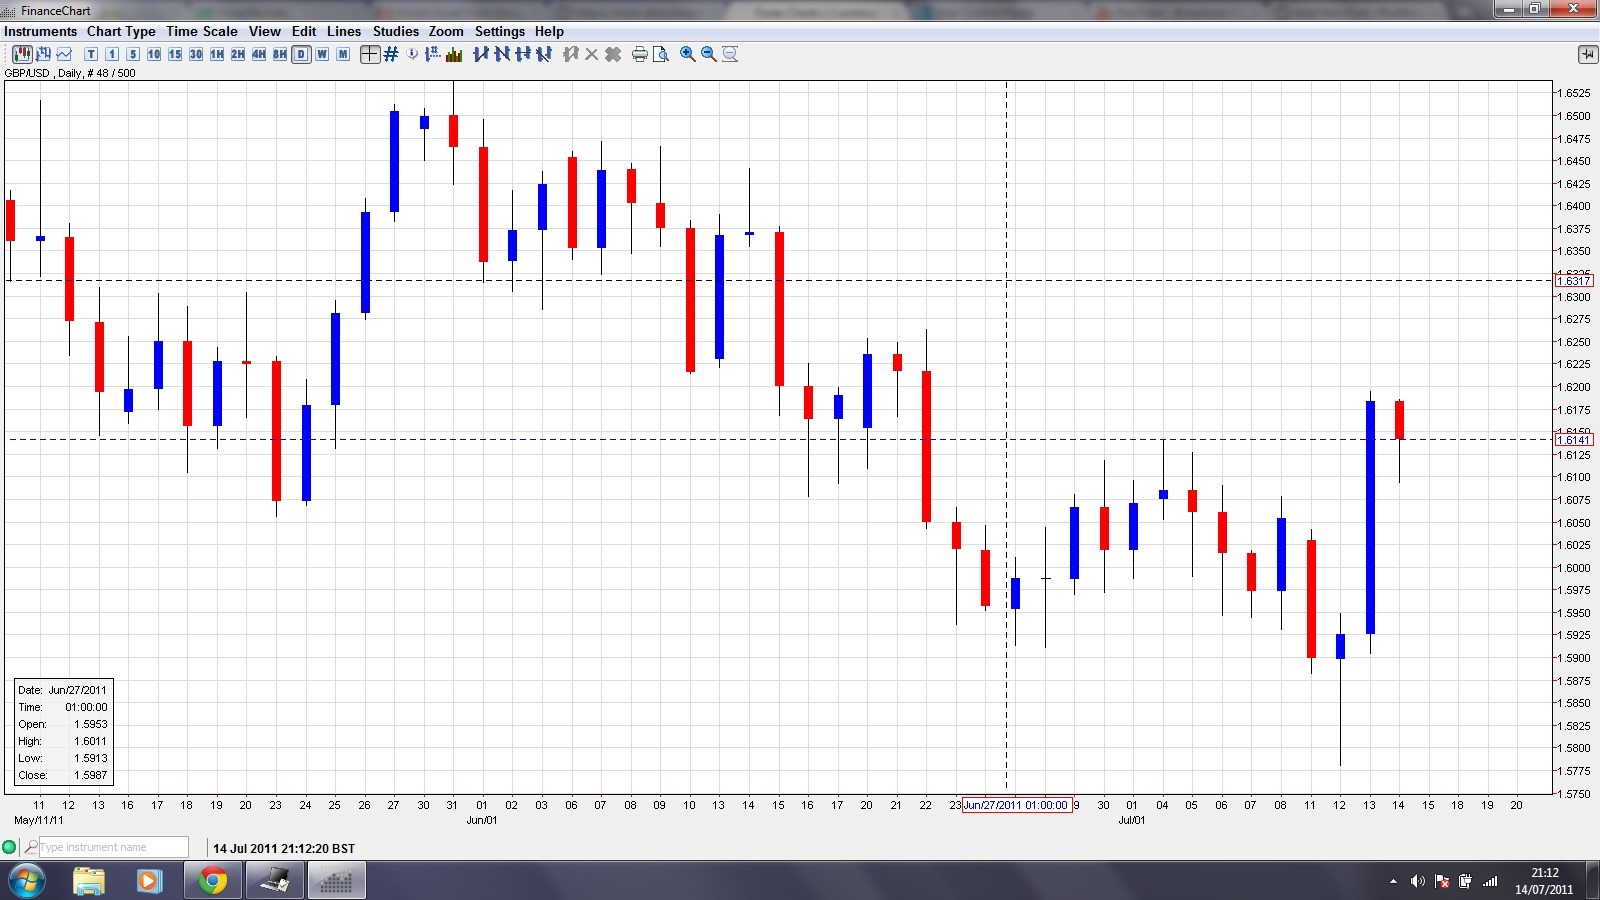 GBP vs USD daily chart